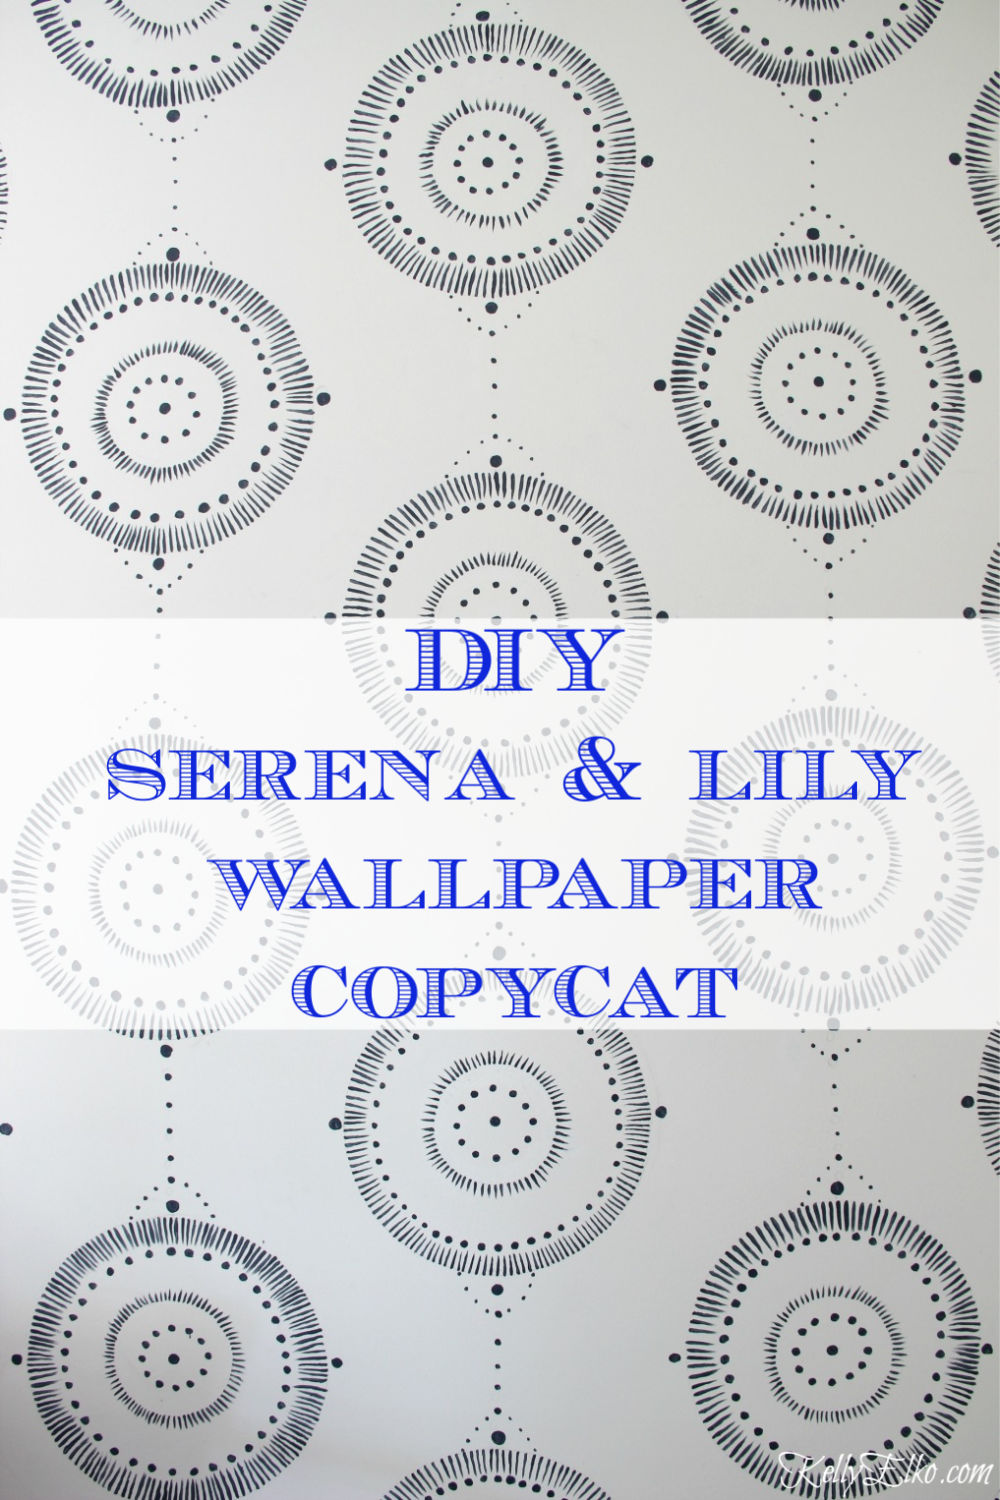 DIY Serena & Lily Wallpaper Copycat! Get the look of expensive wallpaper at a fraction of the cost kellyelko.com #serena&lily #paintingtips #painttechniques #wallpaint #diyideas #diydecor #homedecor